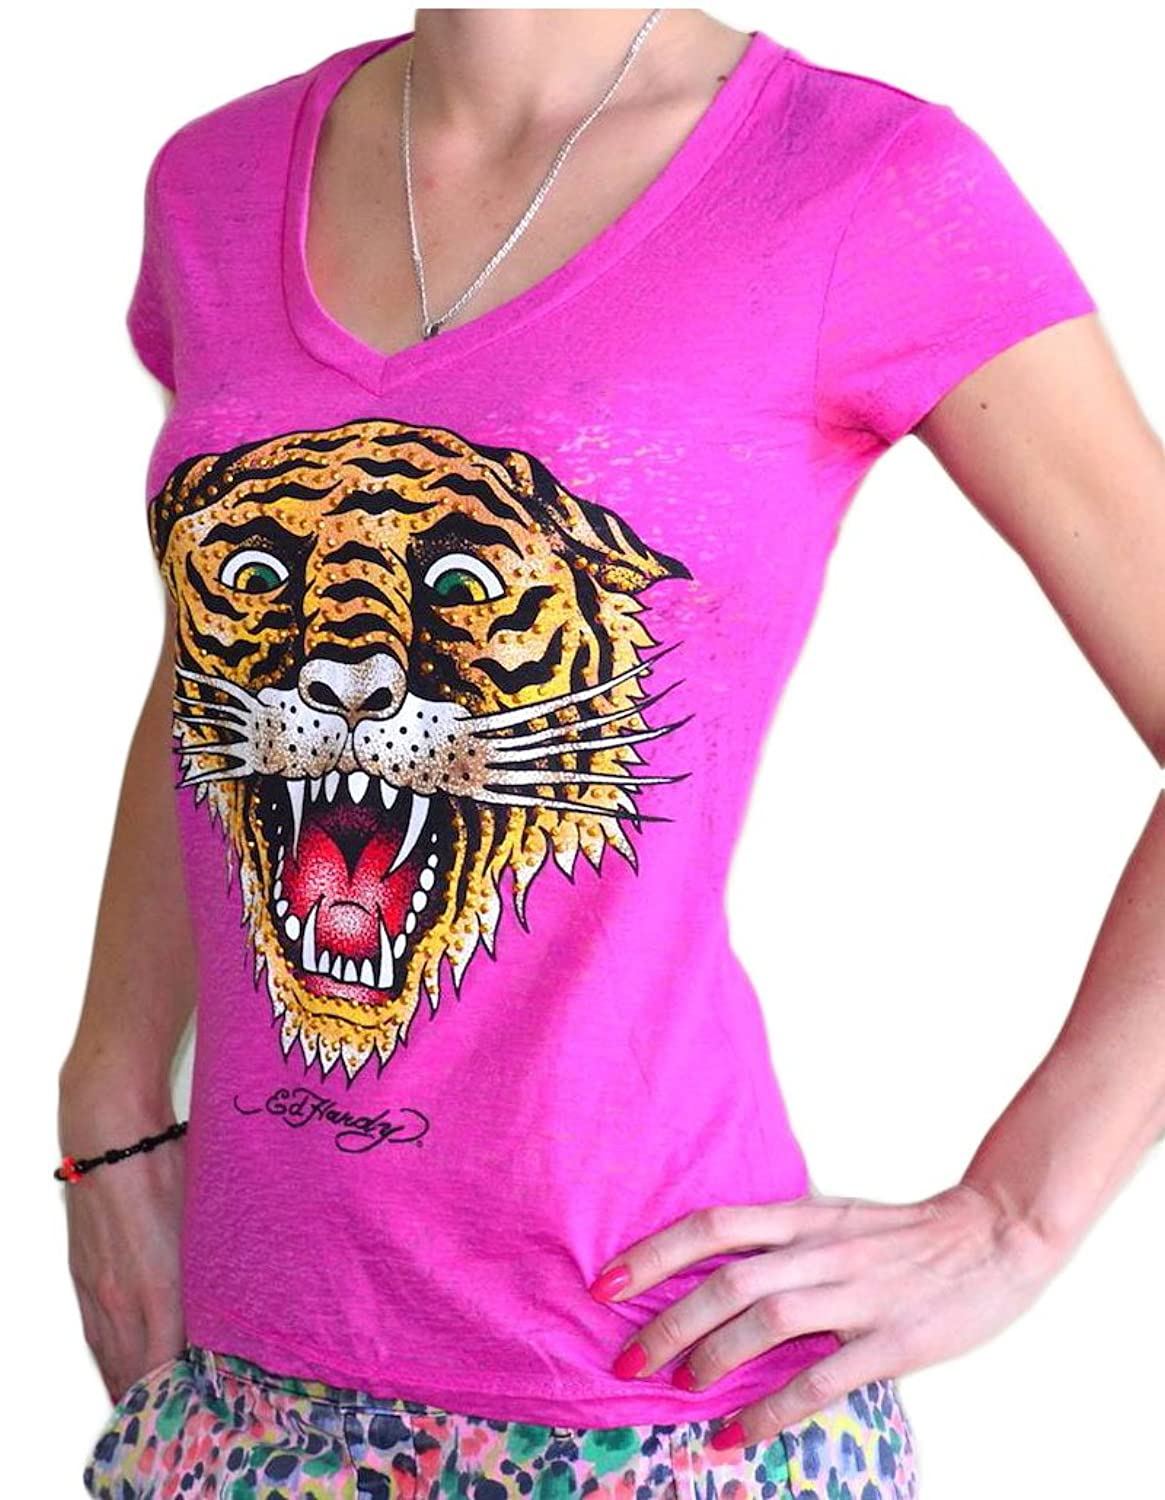 Ed Hardy Women's V-Neck Tiger Graphic Tee T-Shirt Pink